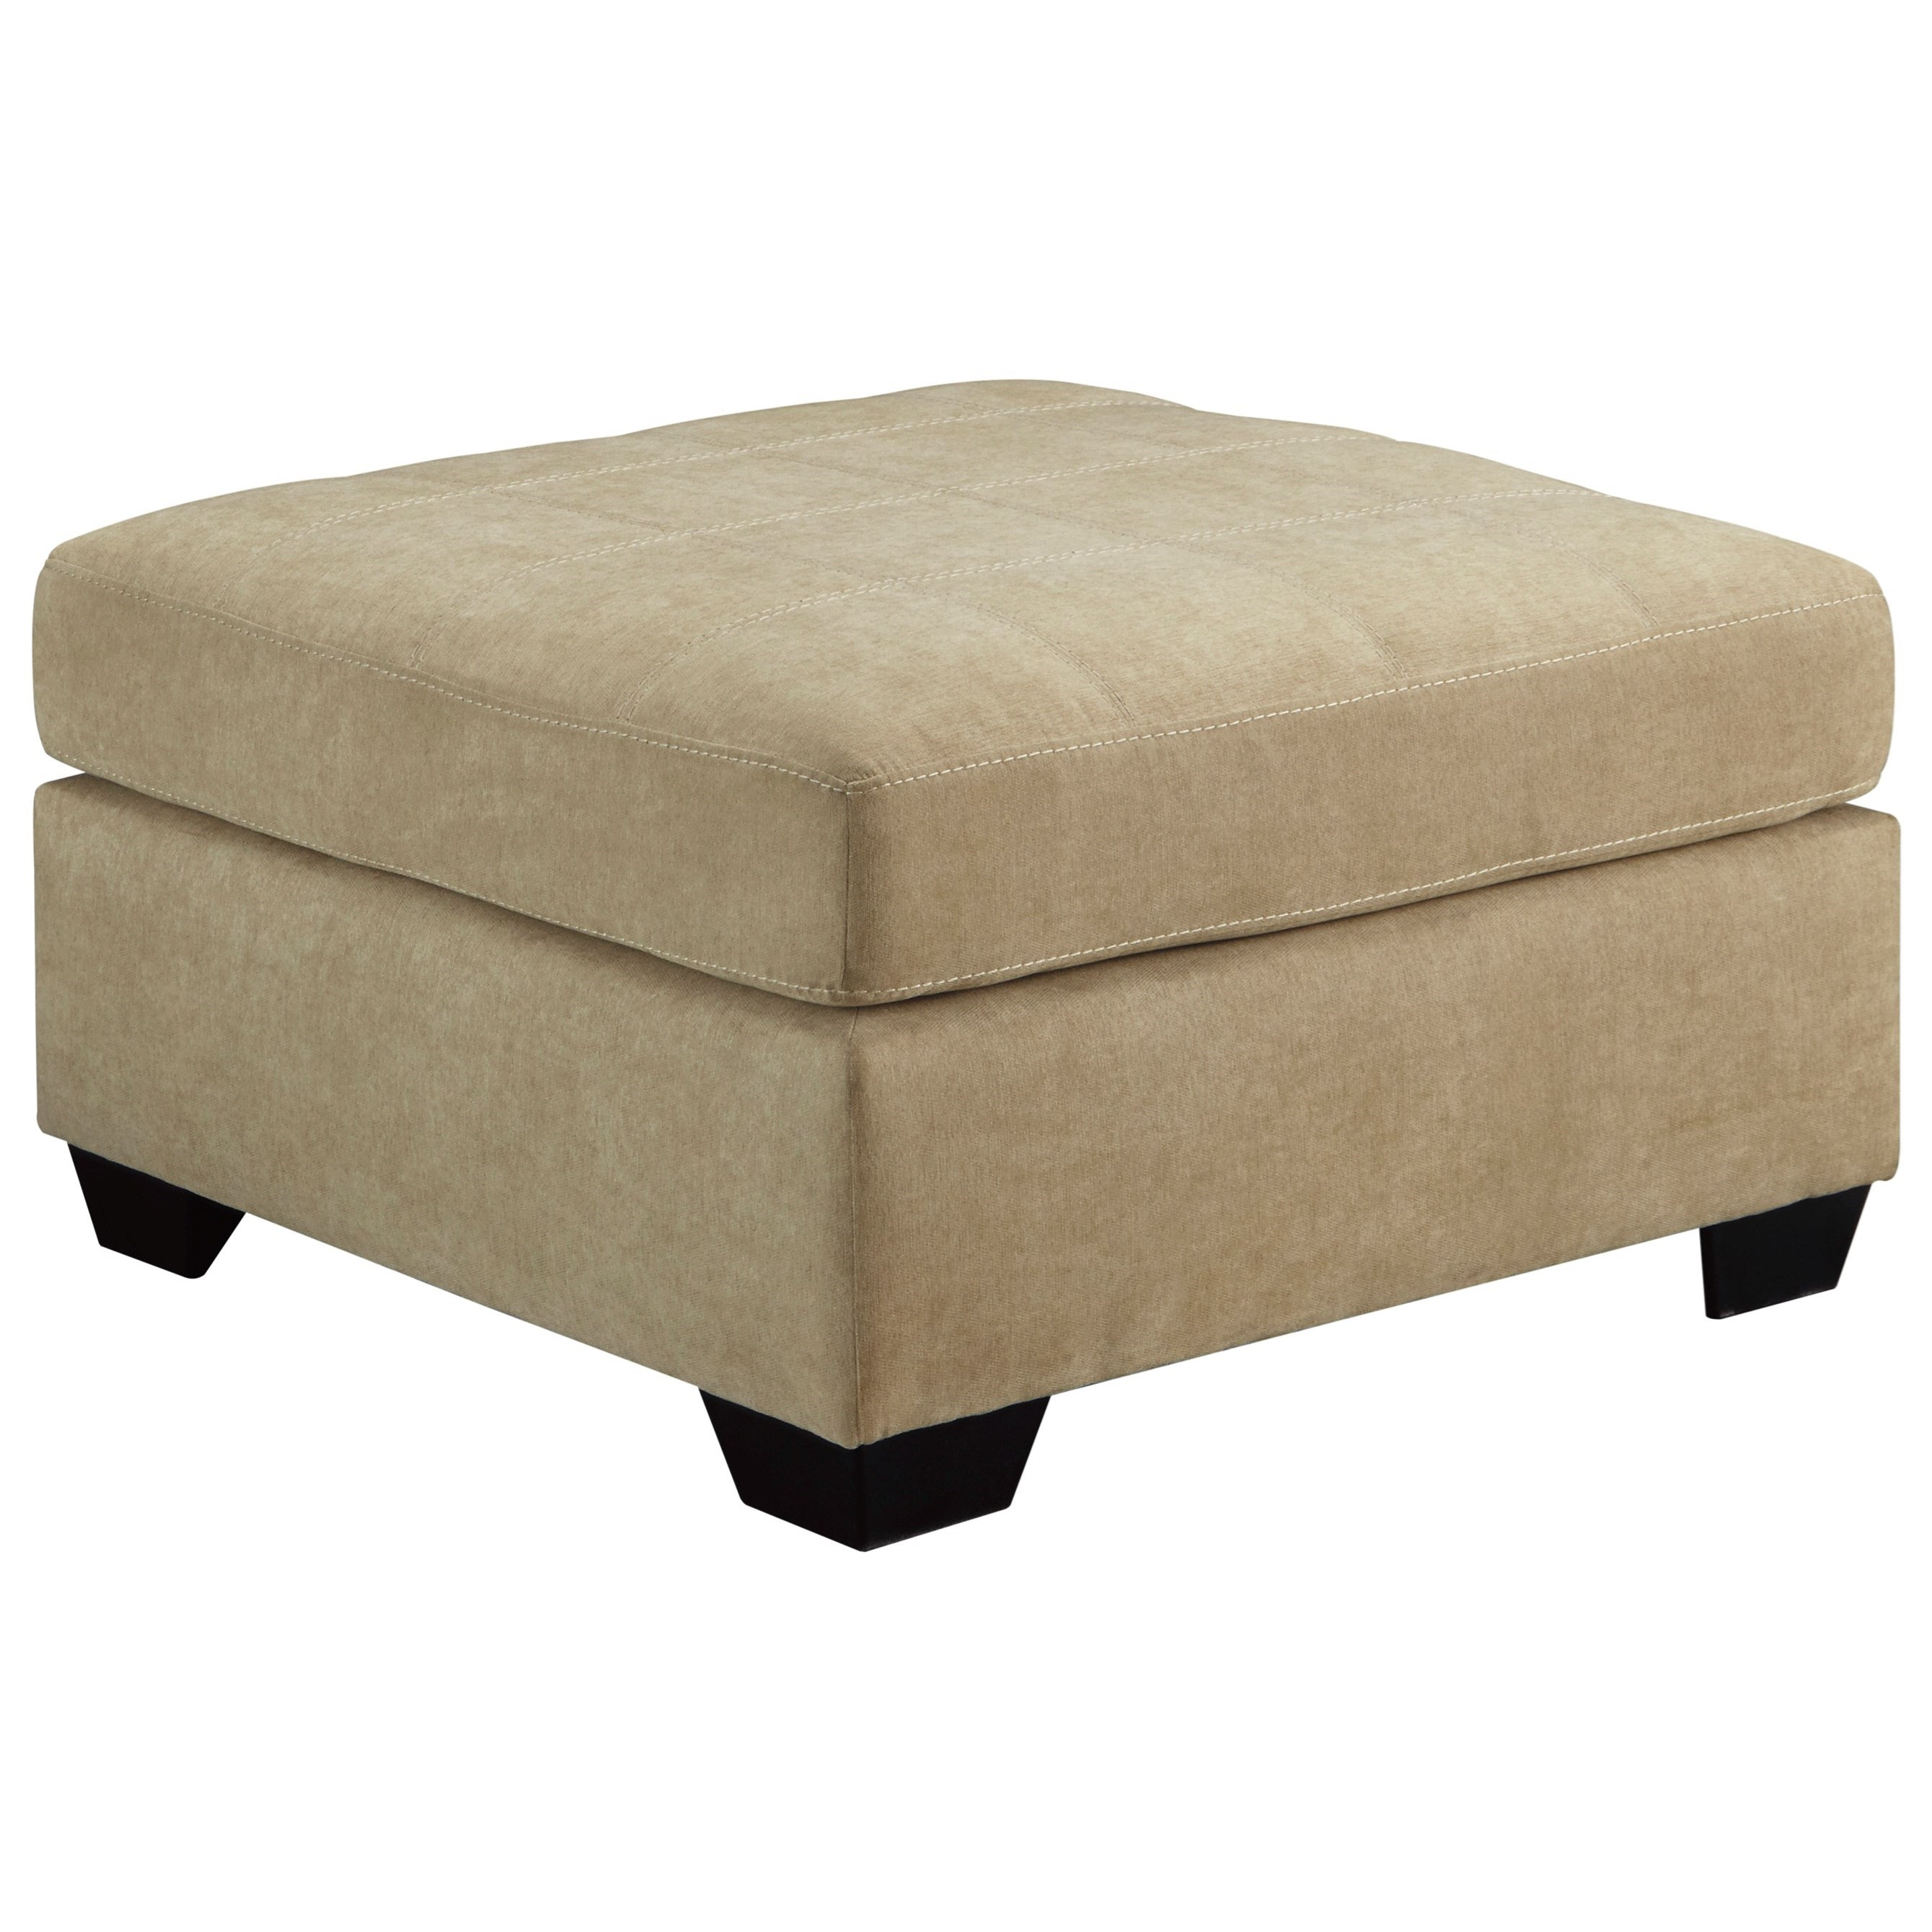 Benchcraft Maier - Cocoa Oversized Accent Ottoman - Item Number: 4520308